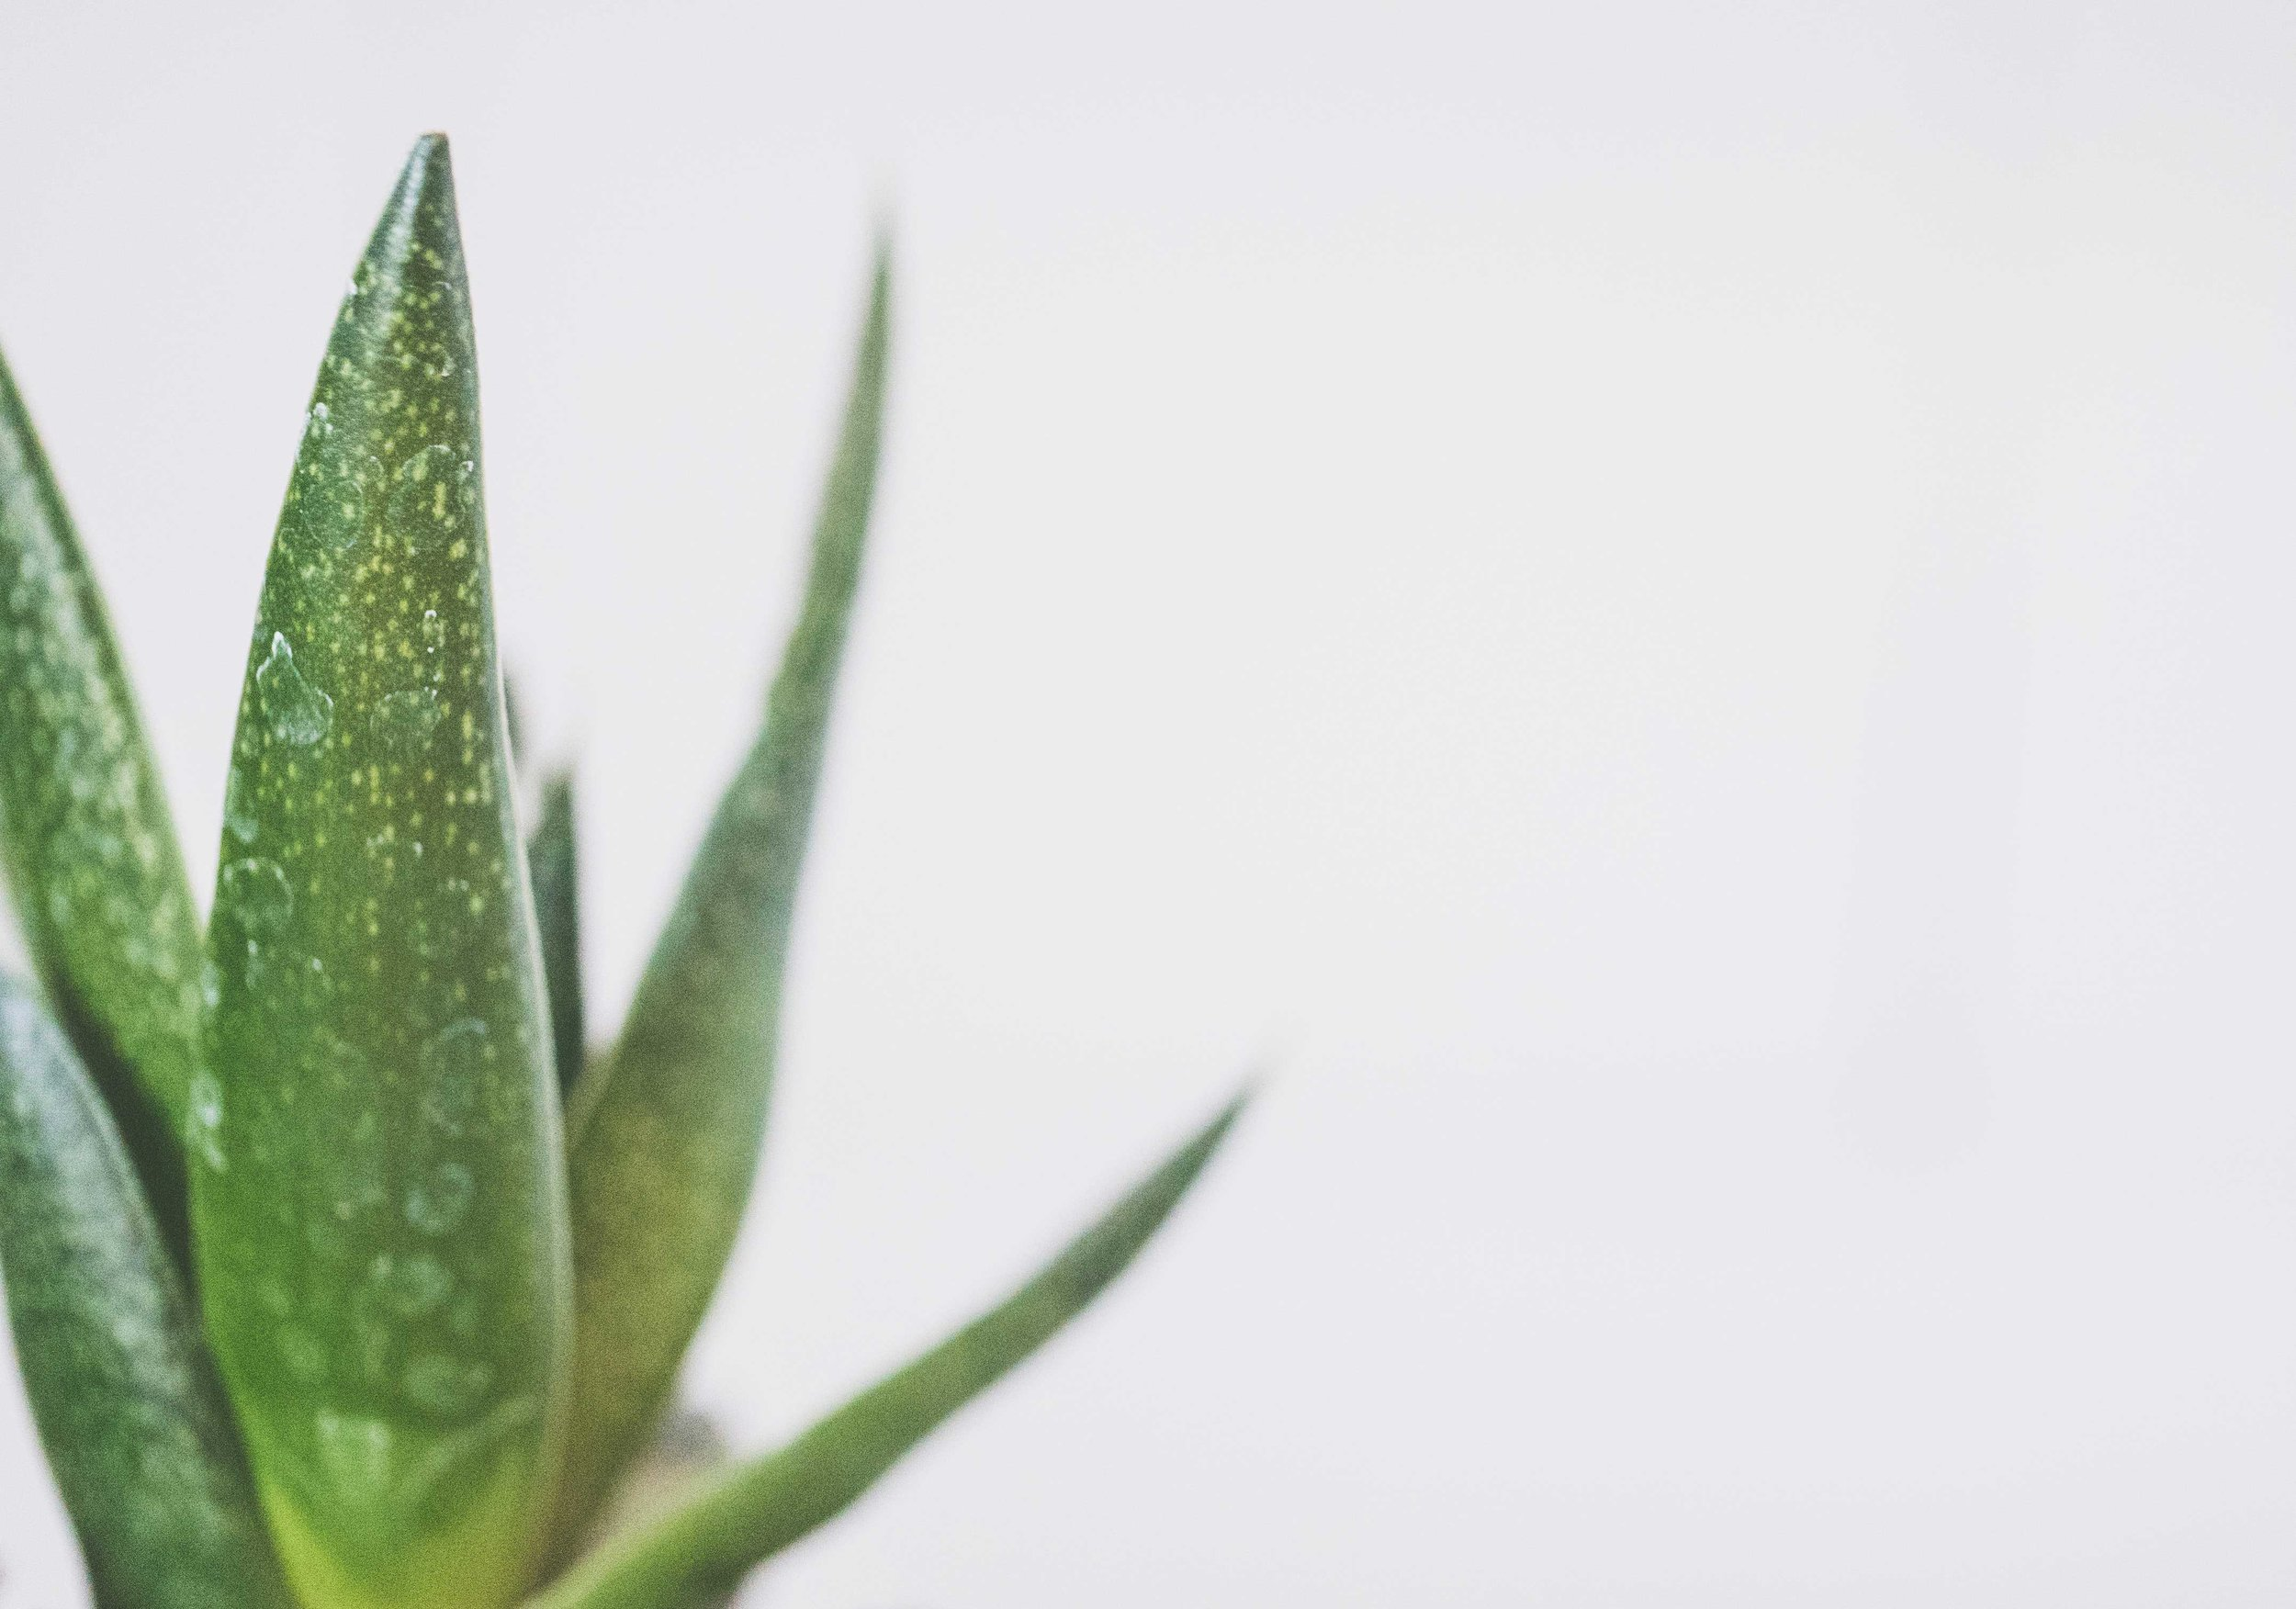 Aloe vera. Photo by Jessica Lewis.